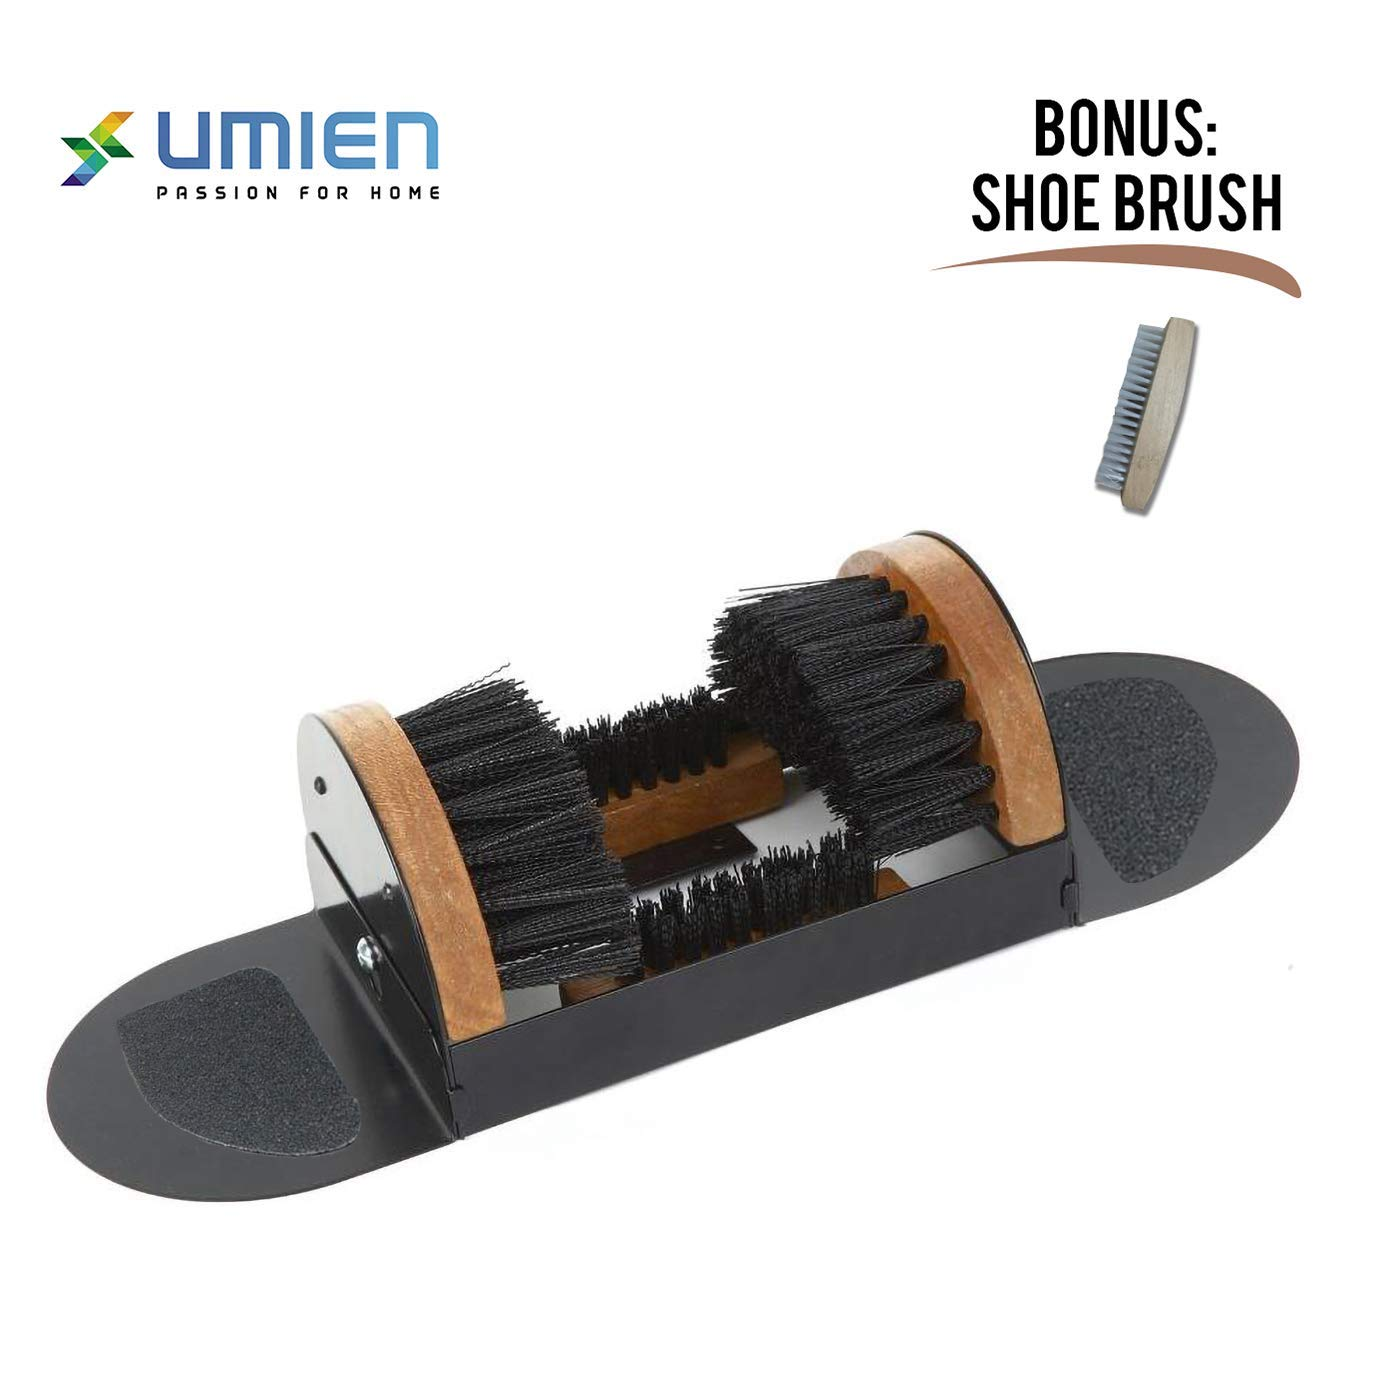 Boot Scraper, Scrubber, Cleaner, Dryer with Two Fold-Up Magnetic Sides No Mounting Required Indoor and Outdoor use - Includes Extra Shoe Brush - Easy to Use for Children & Adults